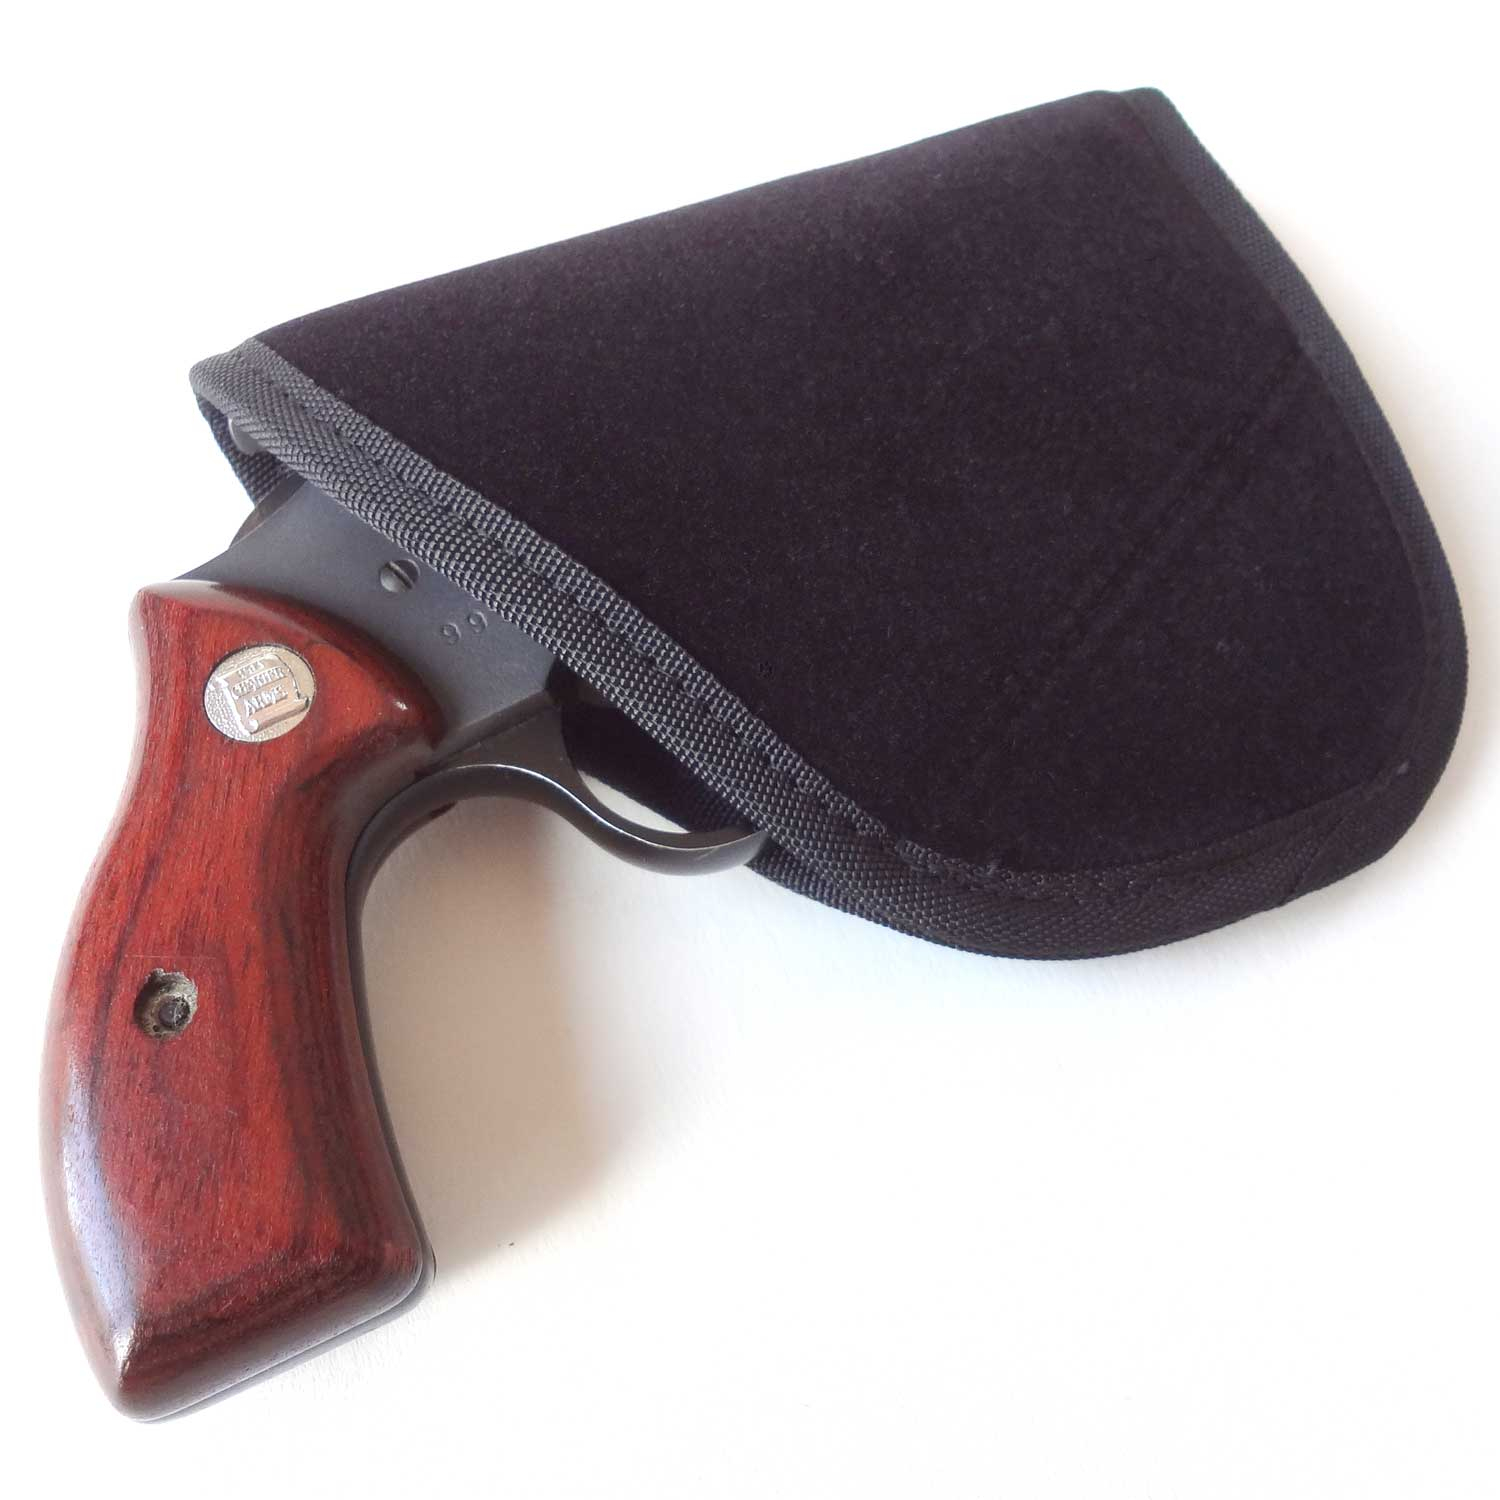 Concealment Pocket Holster for Conceal Carry